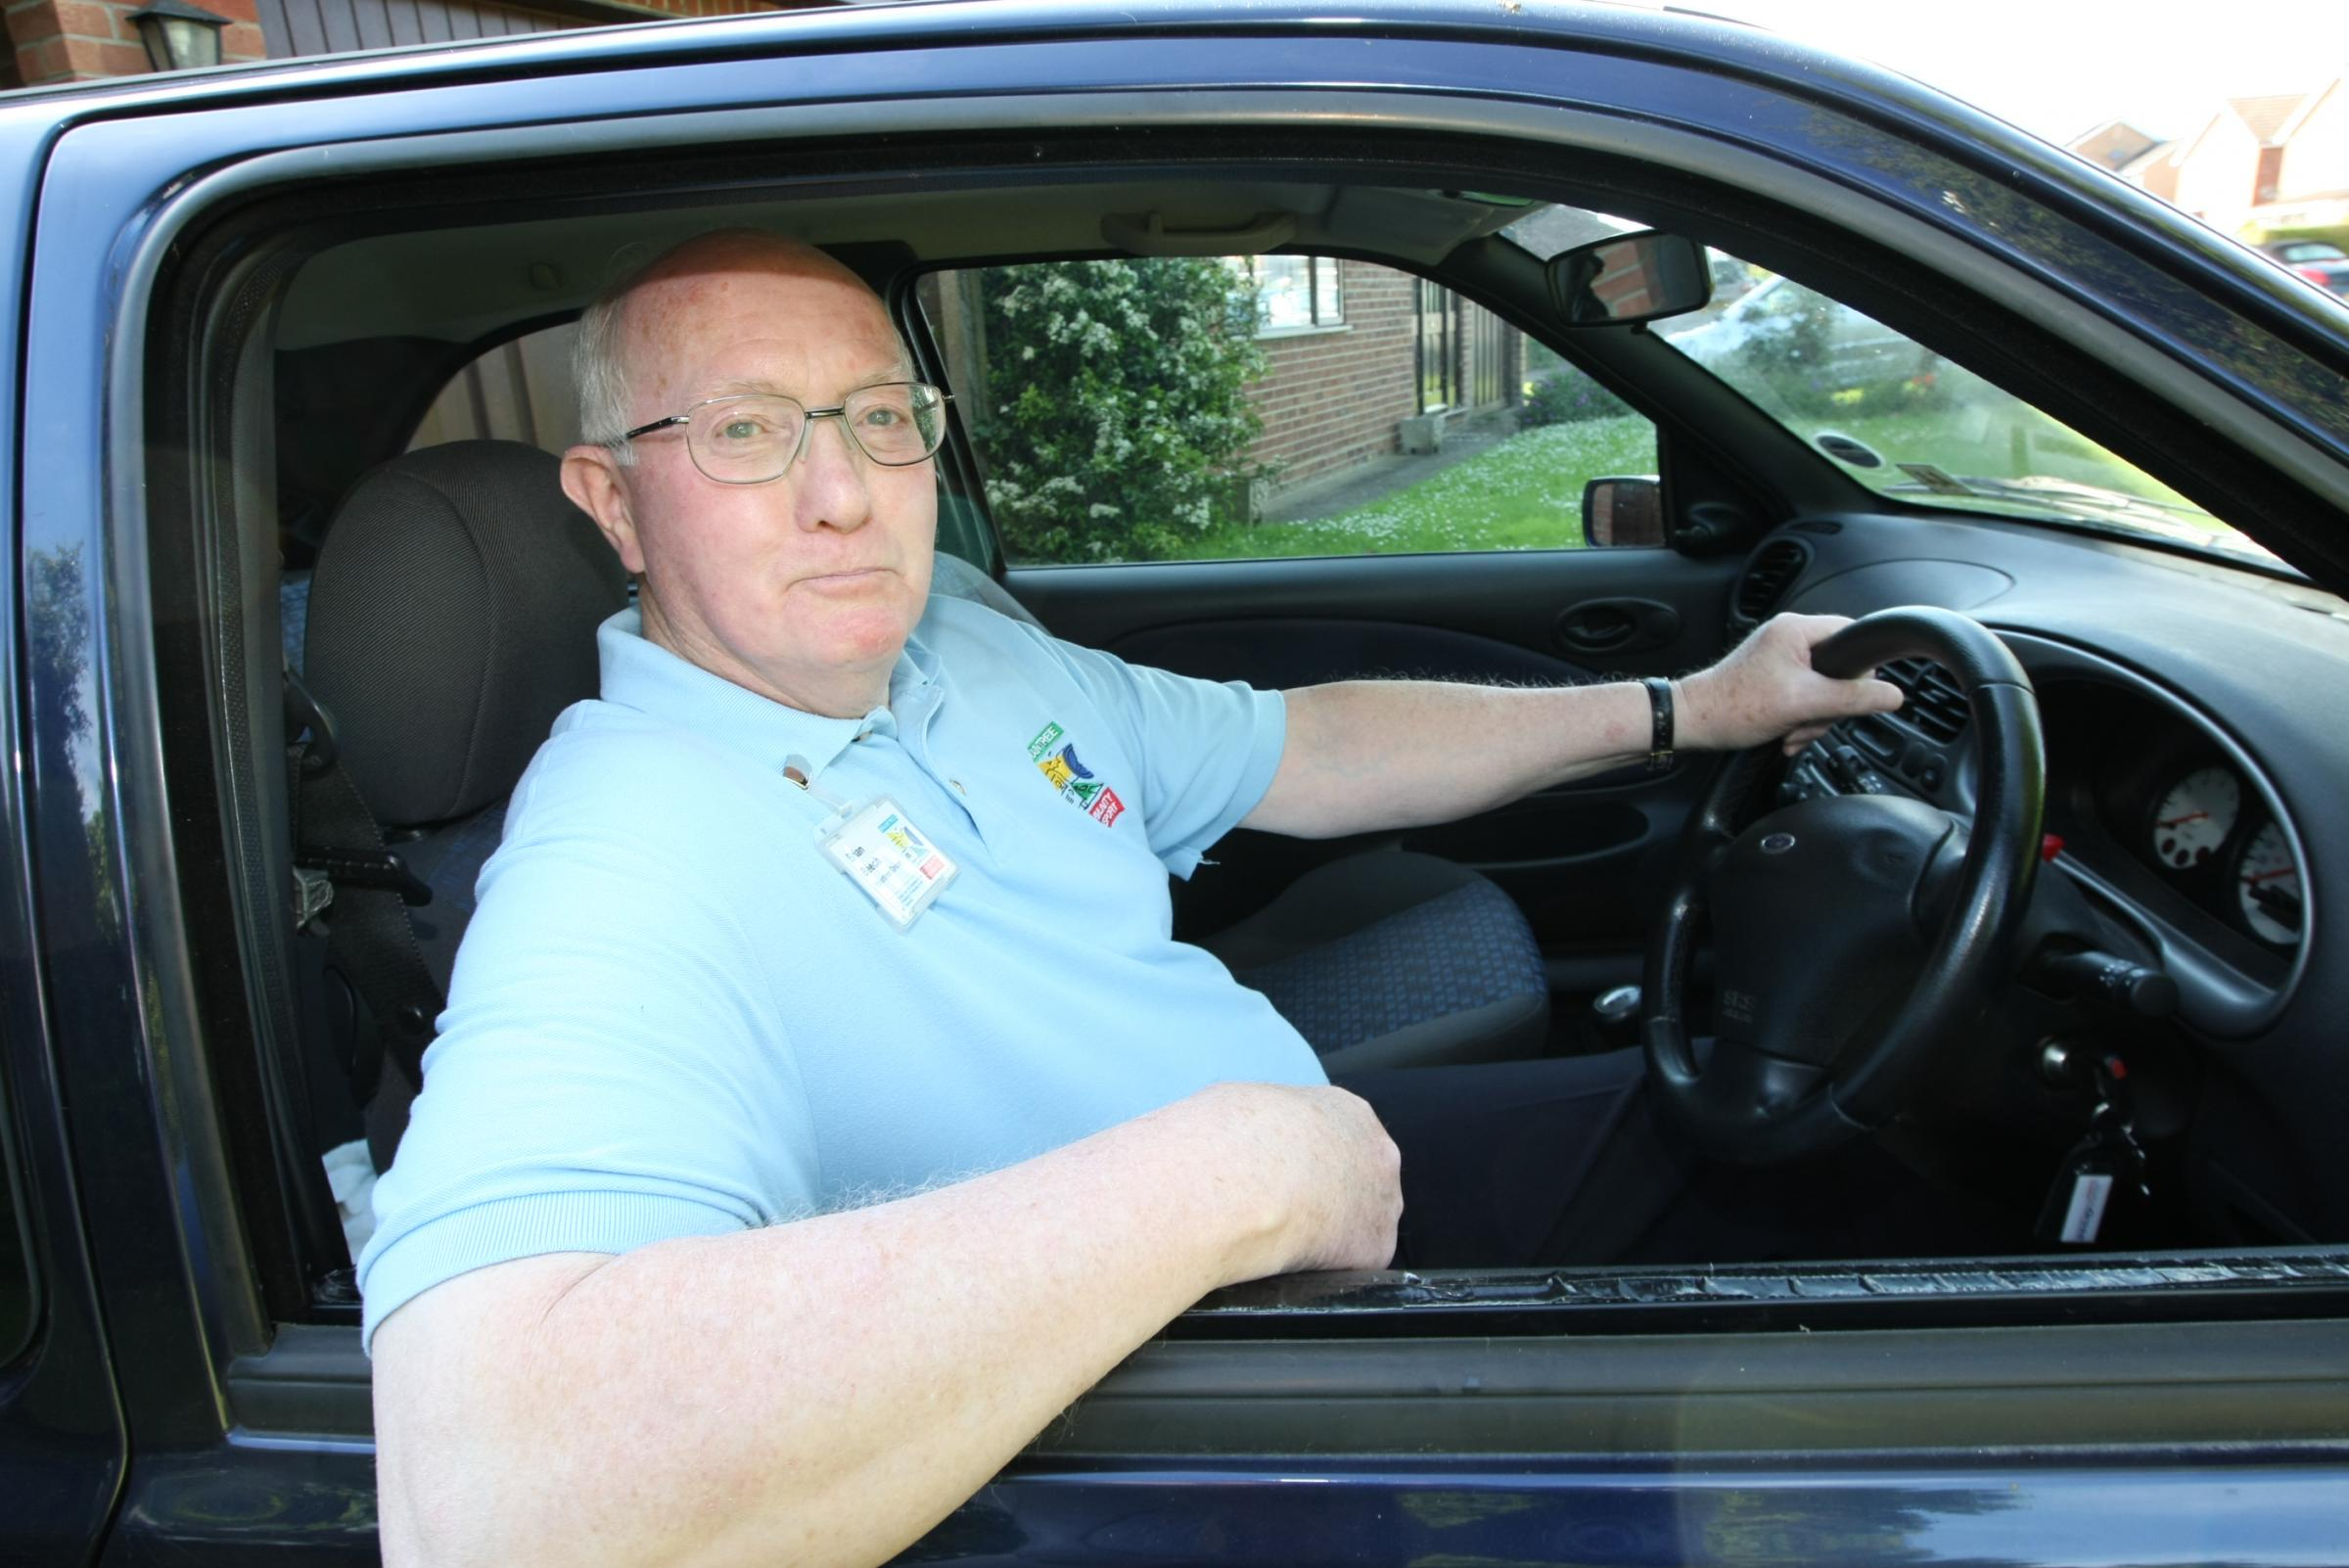 Could you be a volunteer driver like Brian?